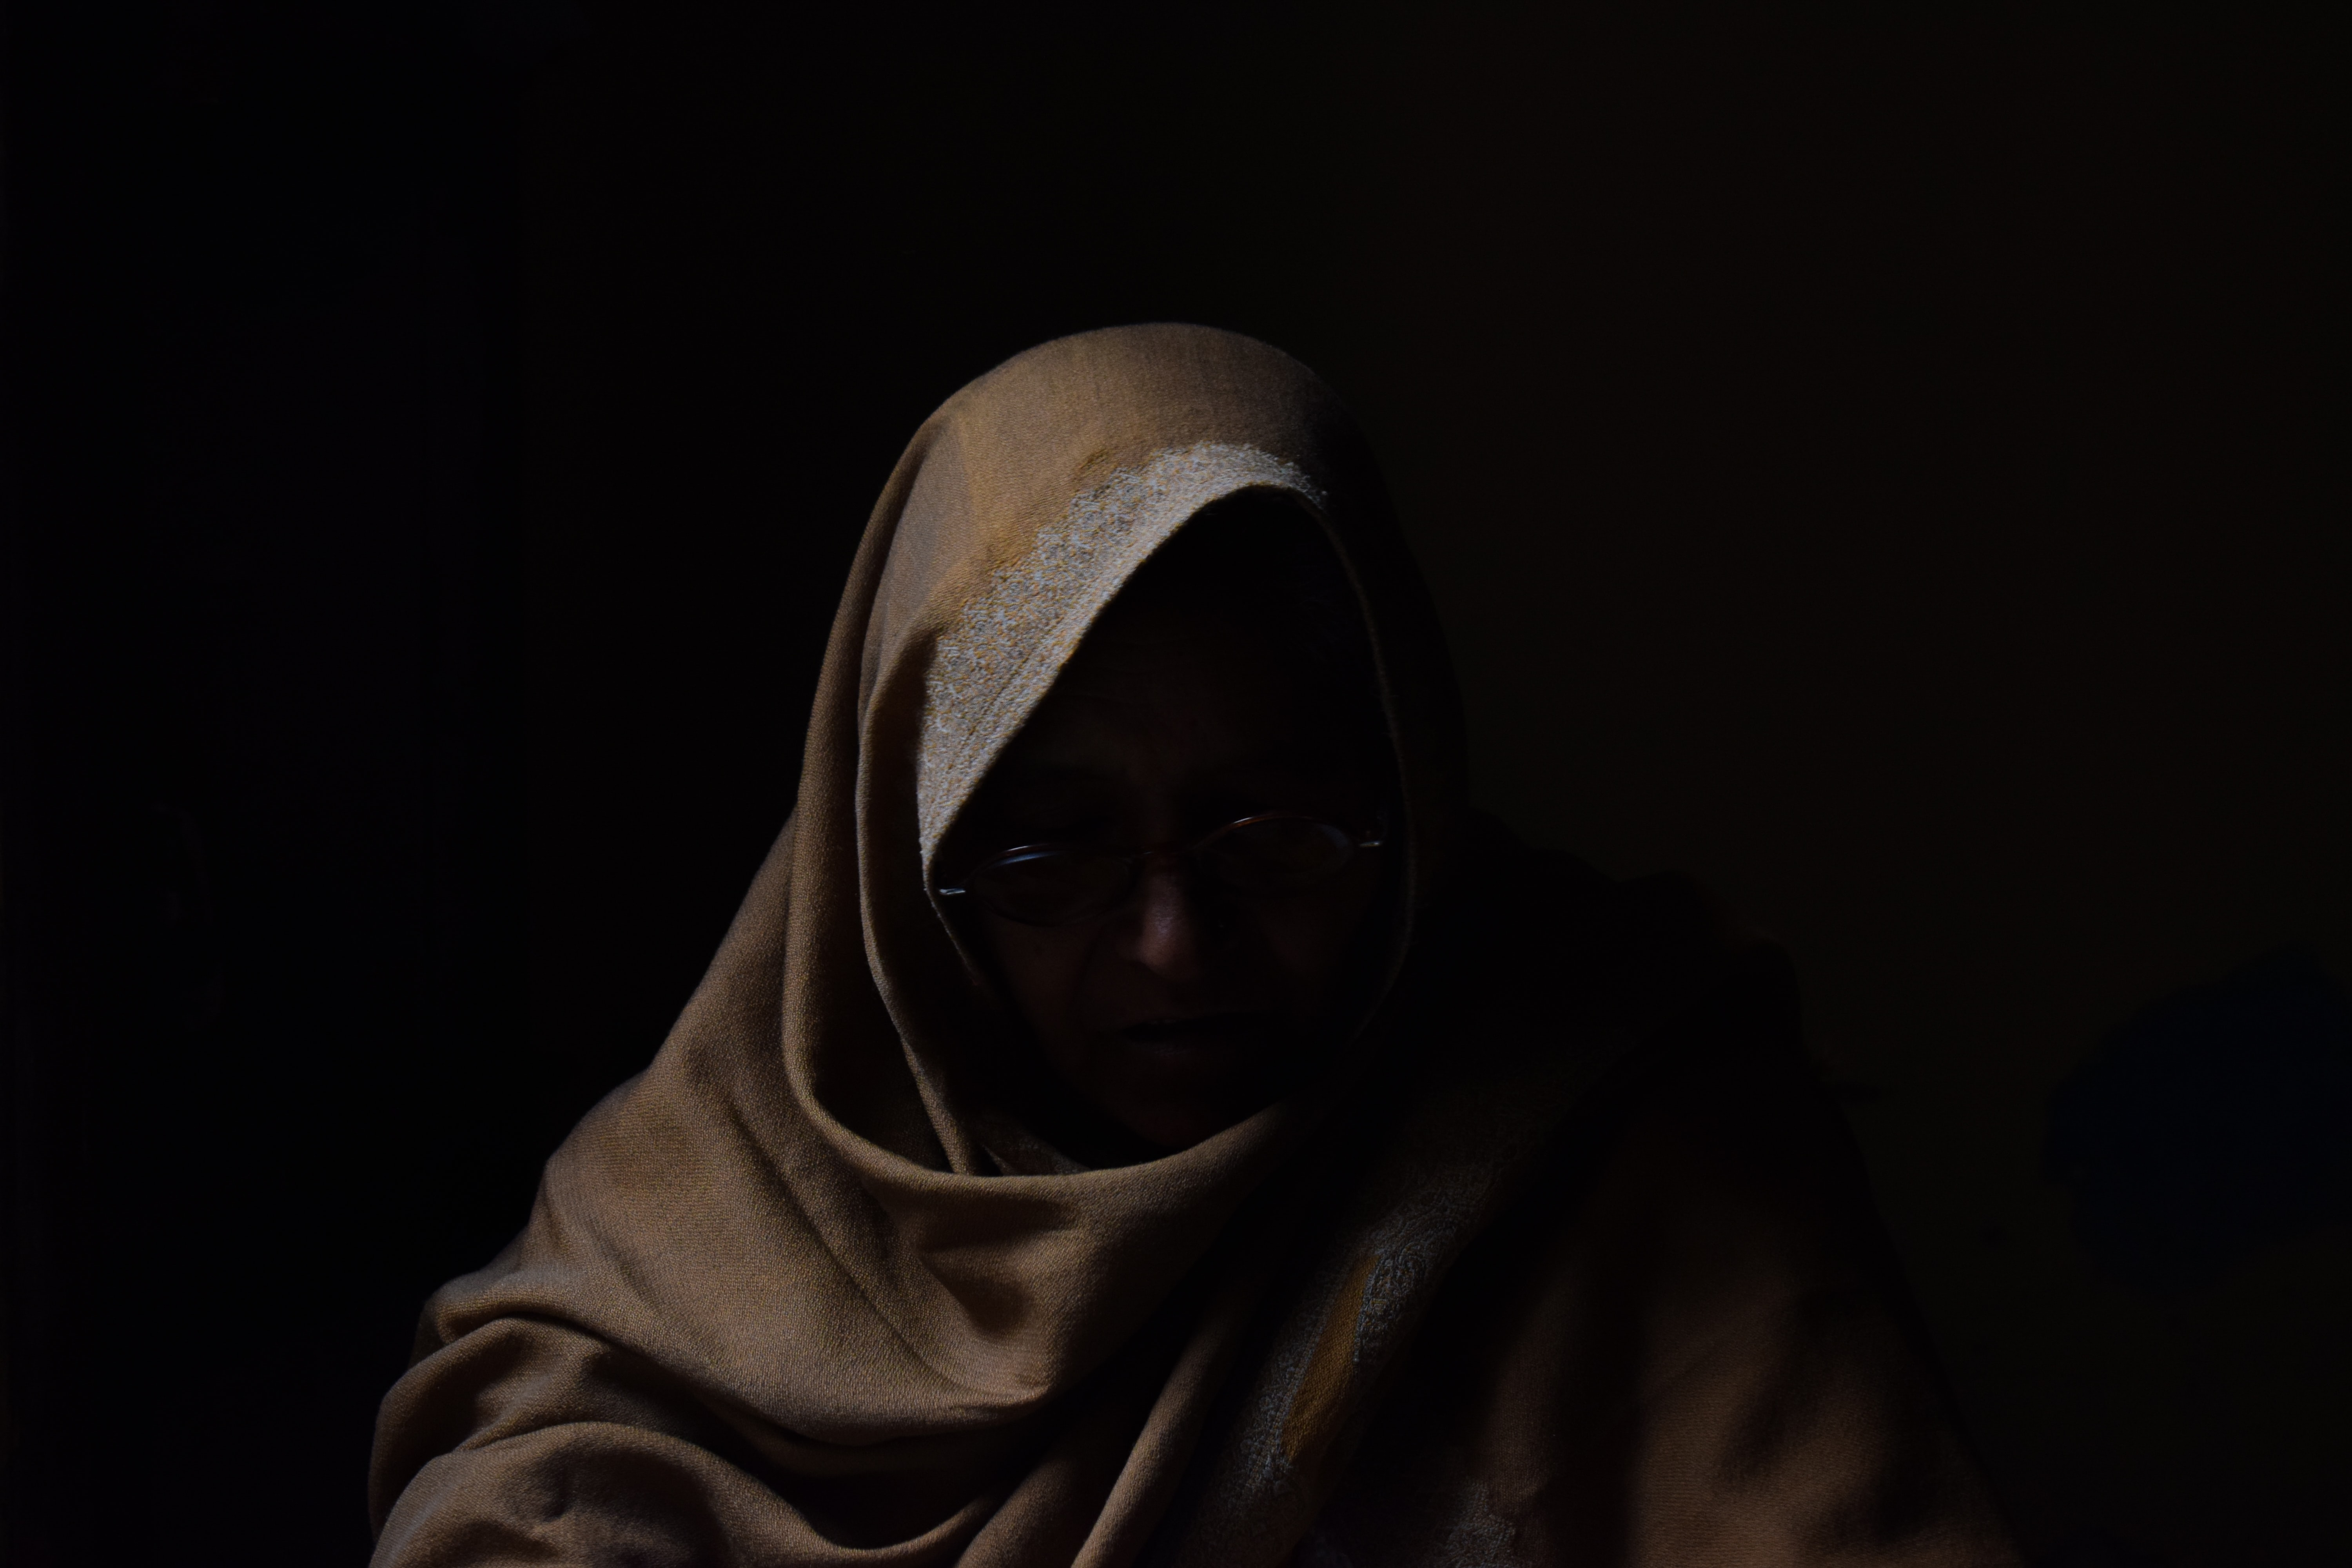 person wearing eyeglasses and robe